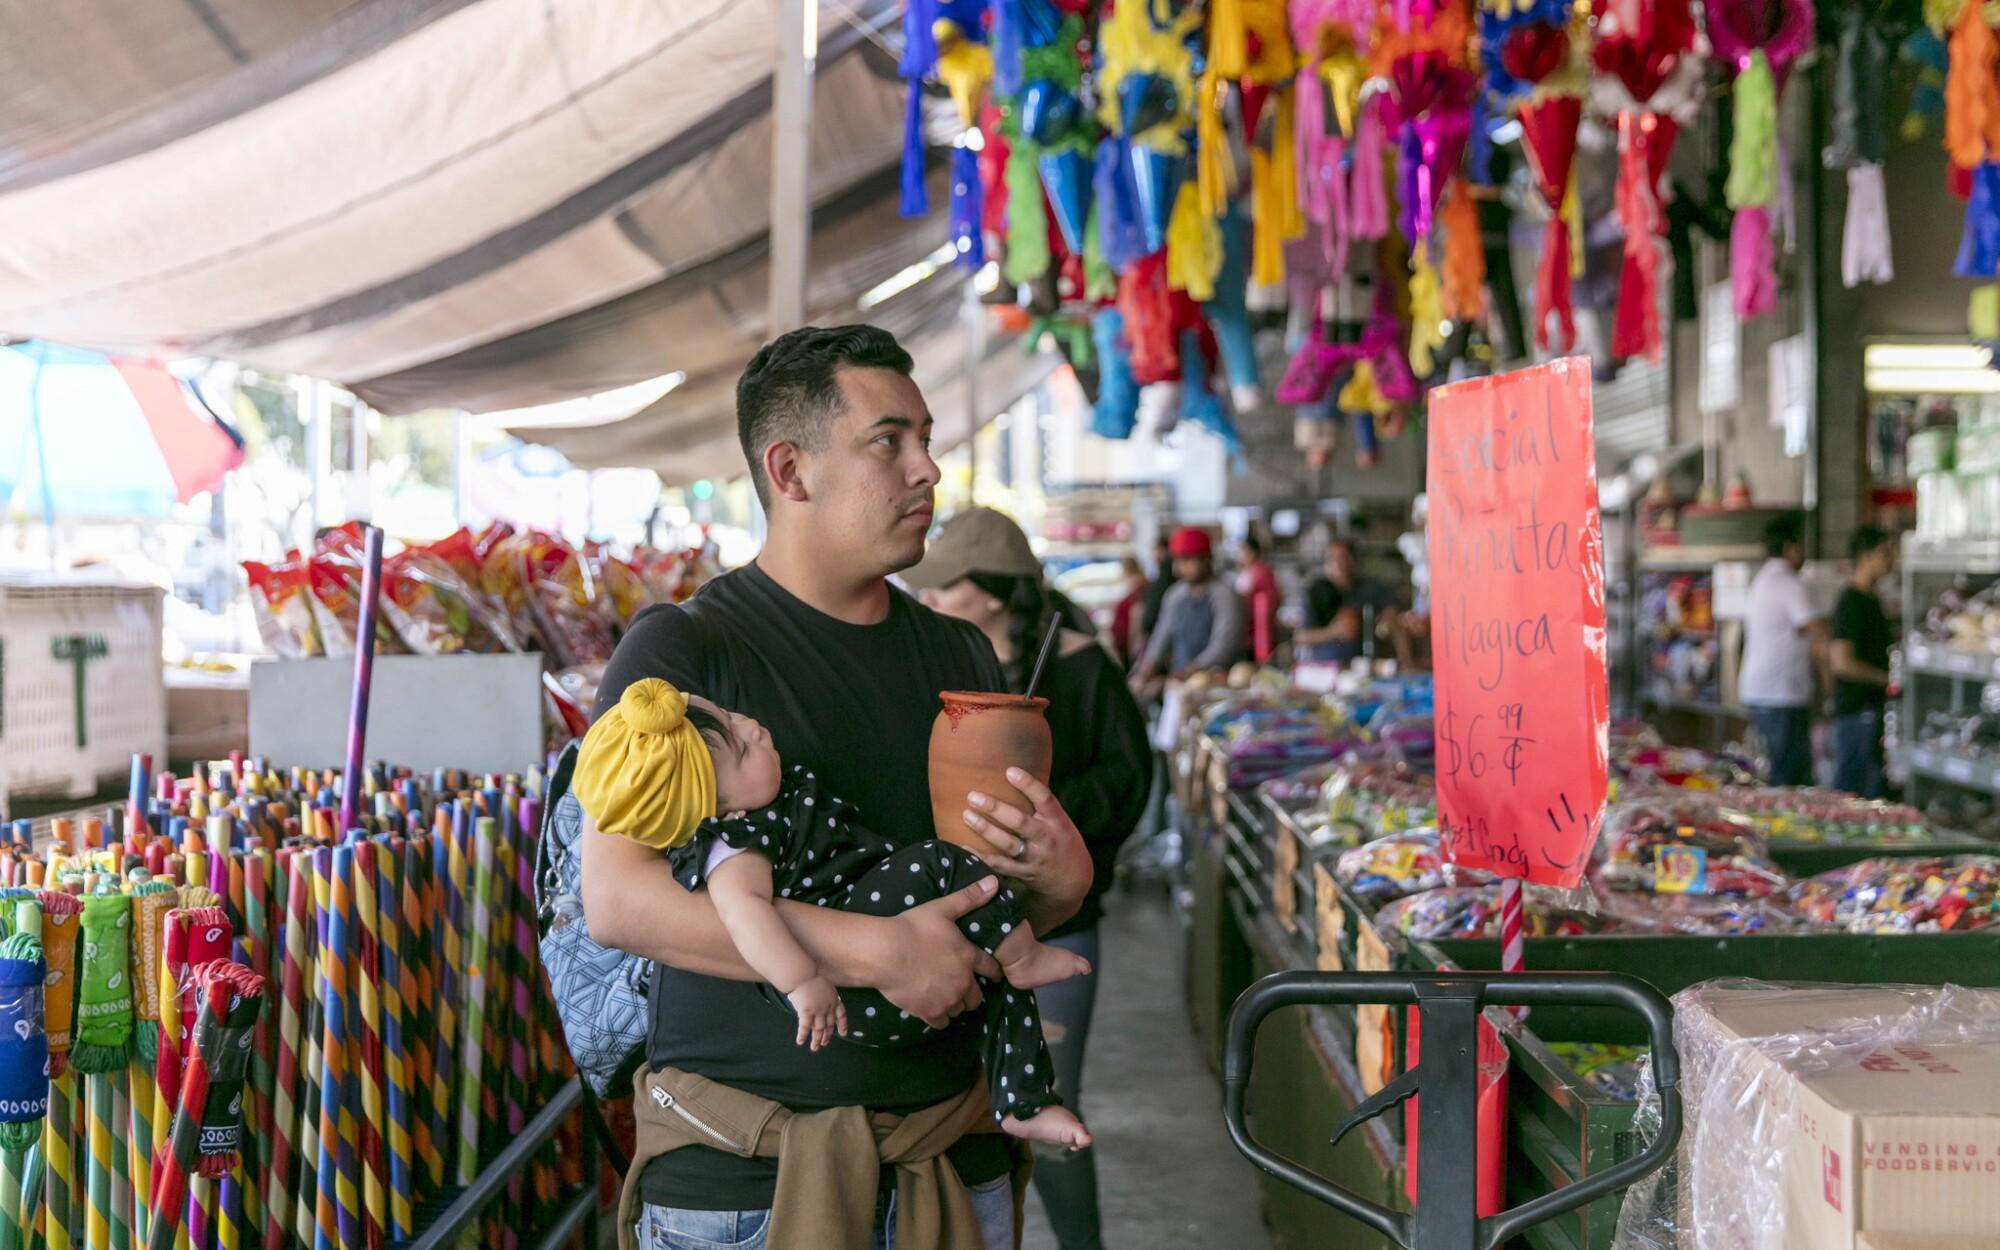 Francisco Martinez and his 4-month-old daughter, Andrea, in the Piñata District in downtown Los Angeles.